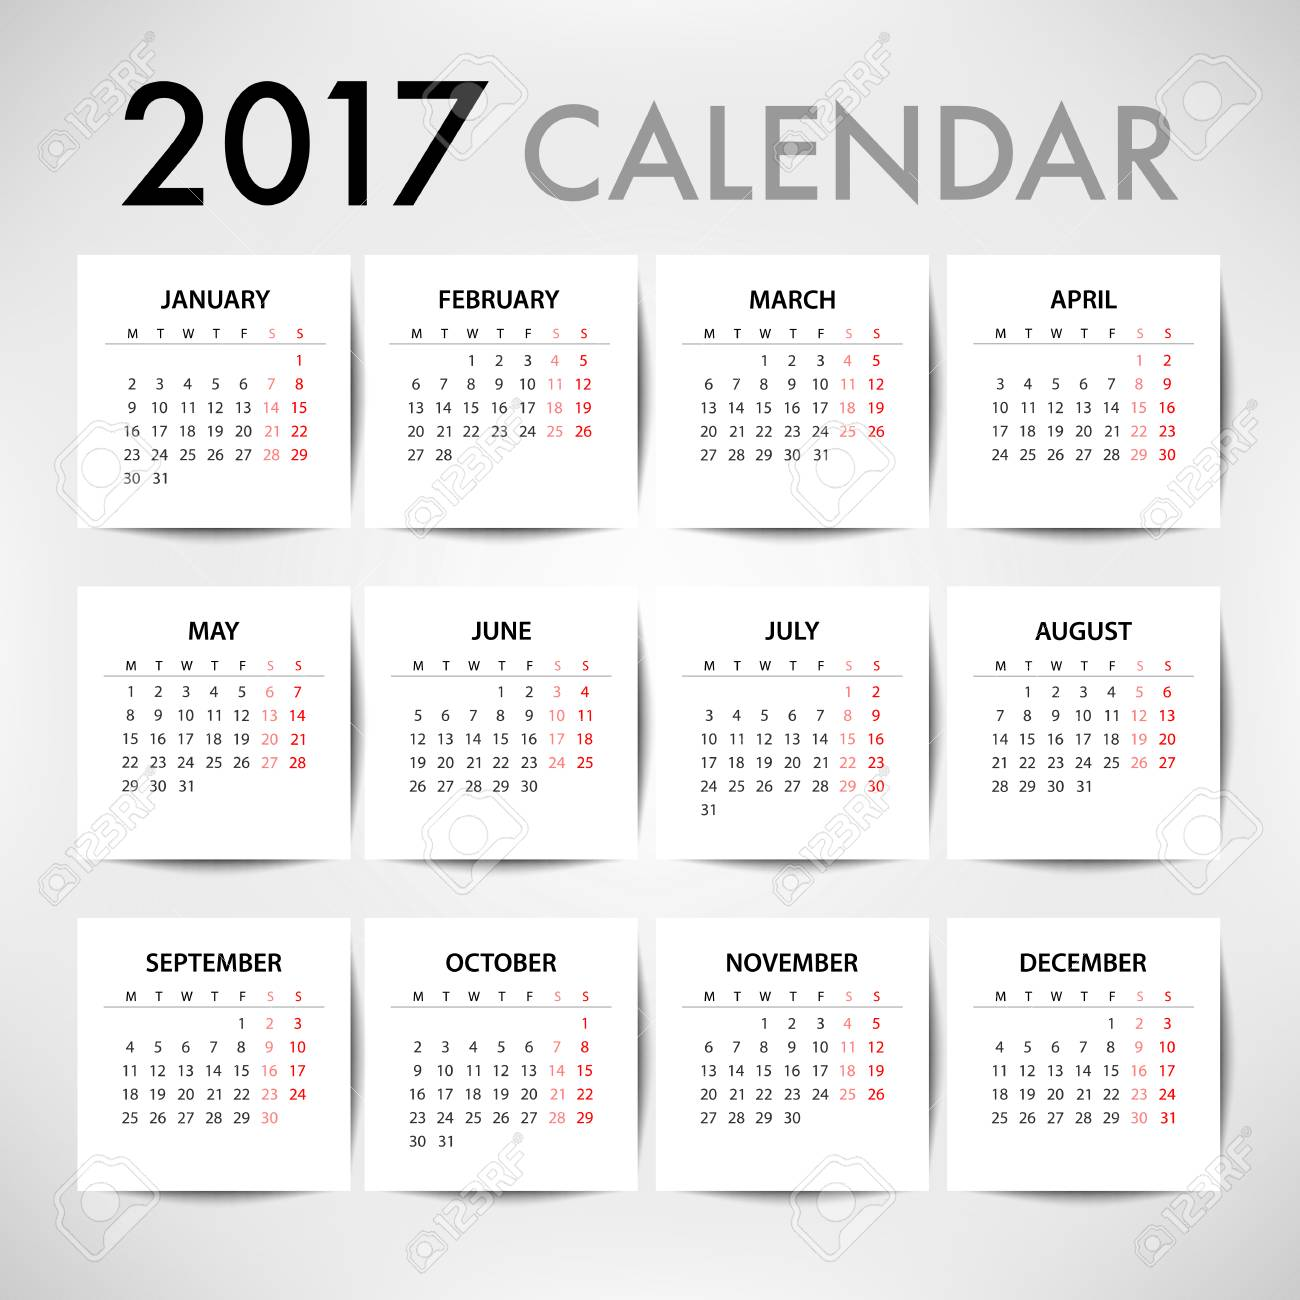 calendar for 2017 for organization and business week starts